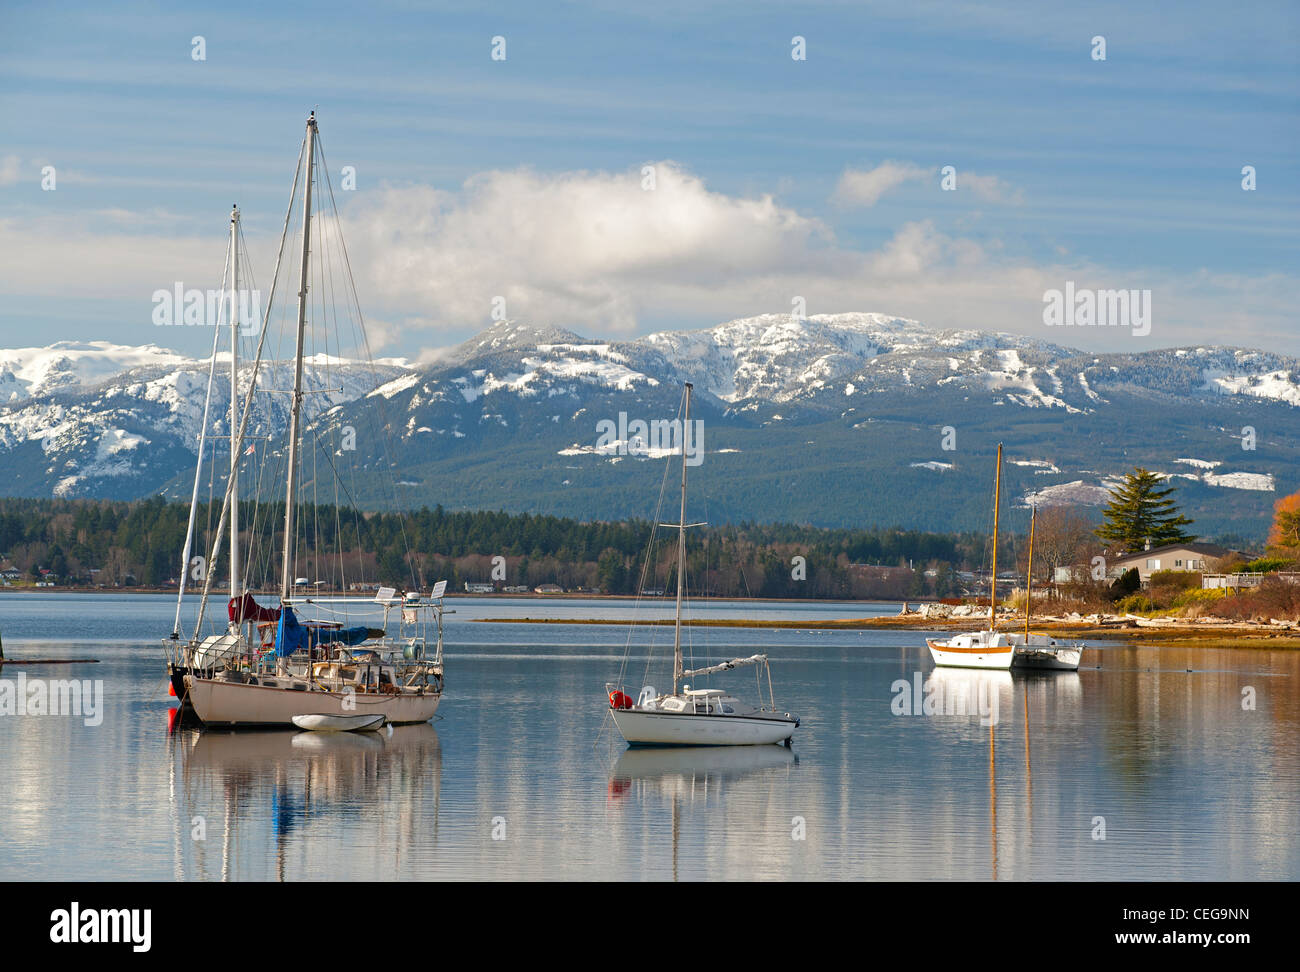 Comox harbour Yacht moorings and float plane berth, Vancouver Island British Columbia Canada.   SCO 7977 - Stock Image